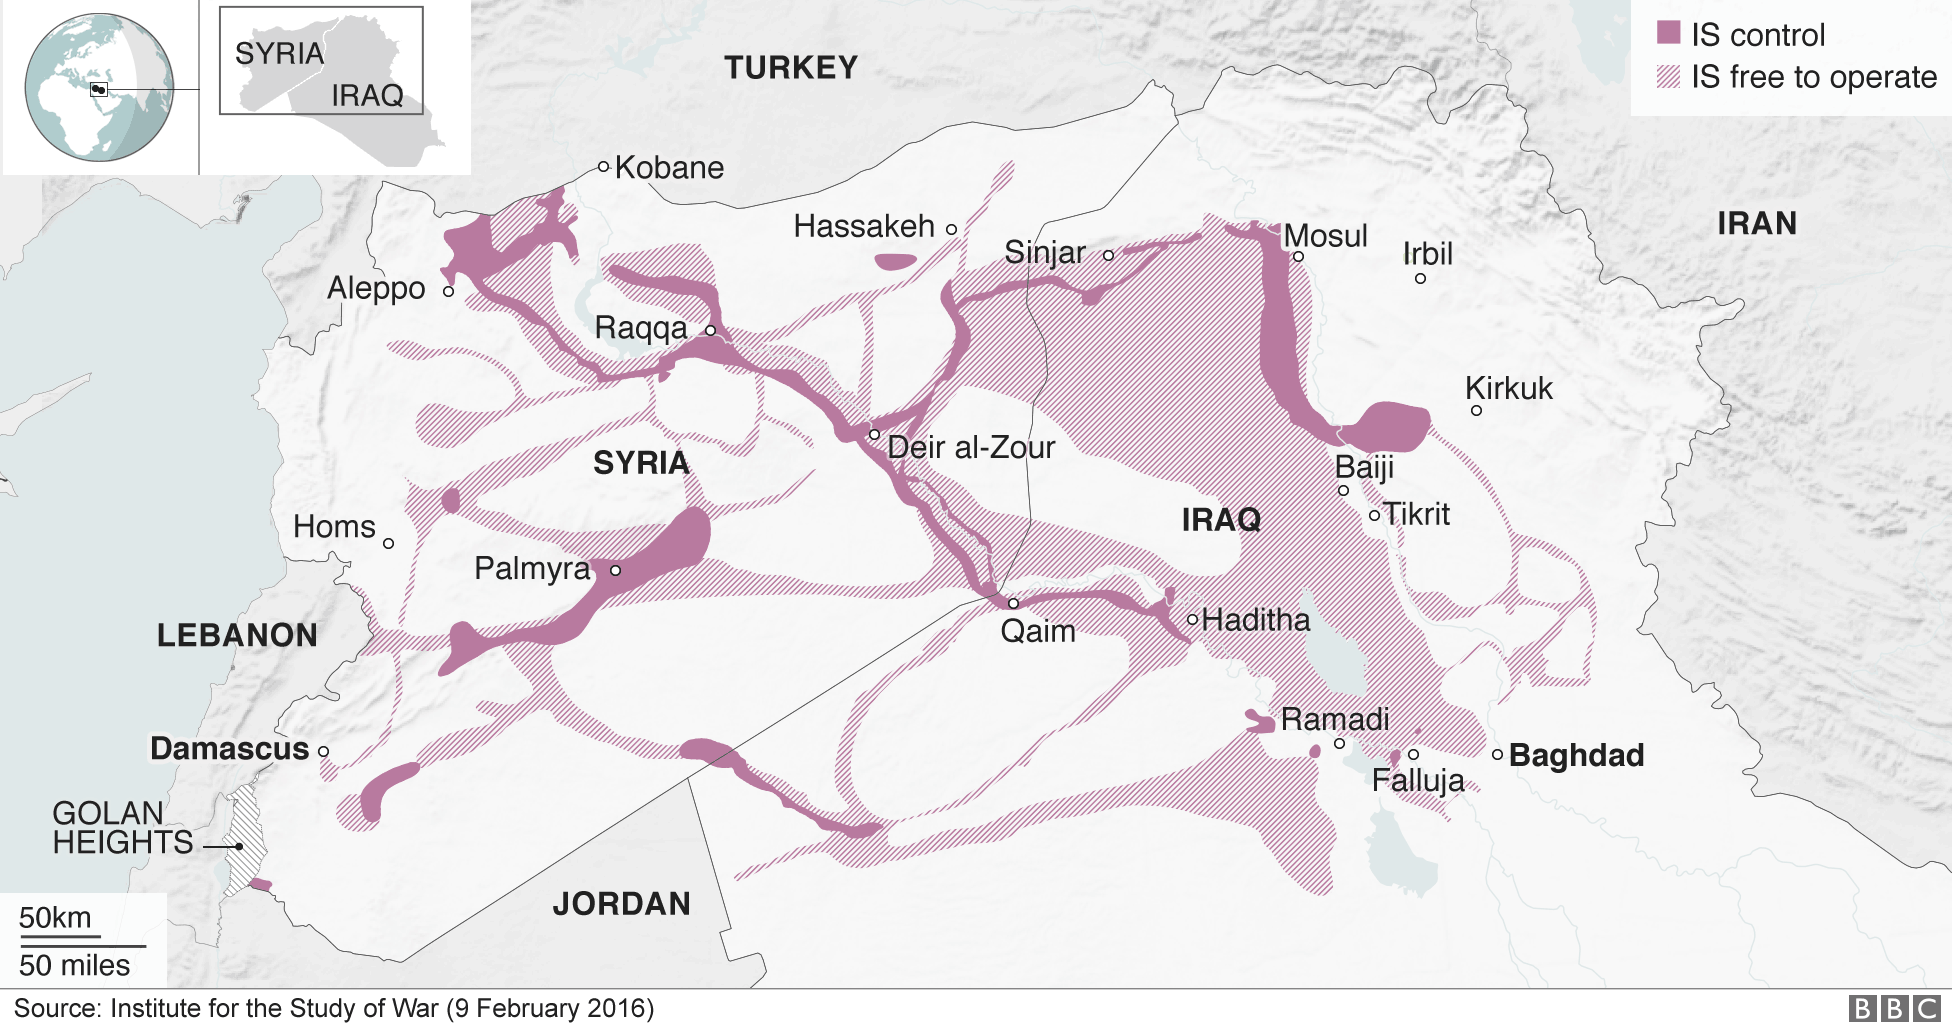 Map of areas controlled by IS